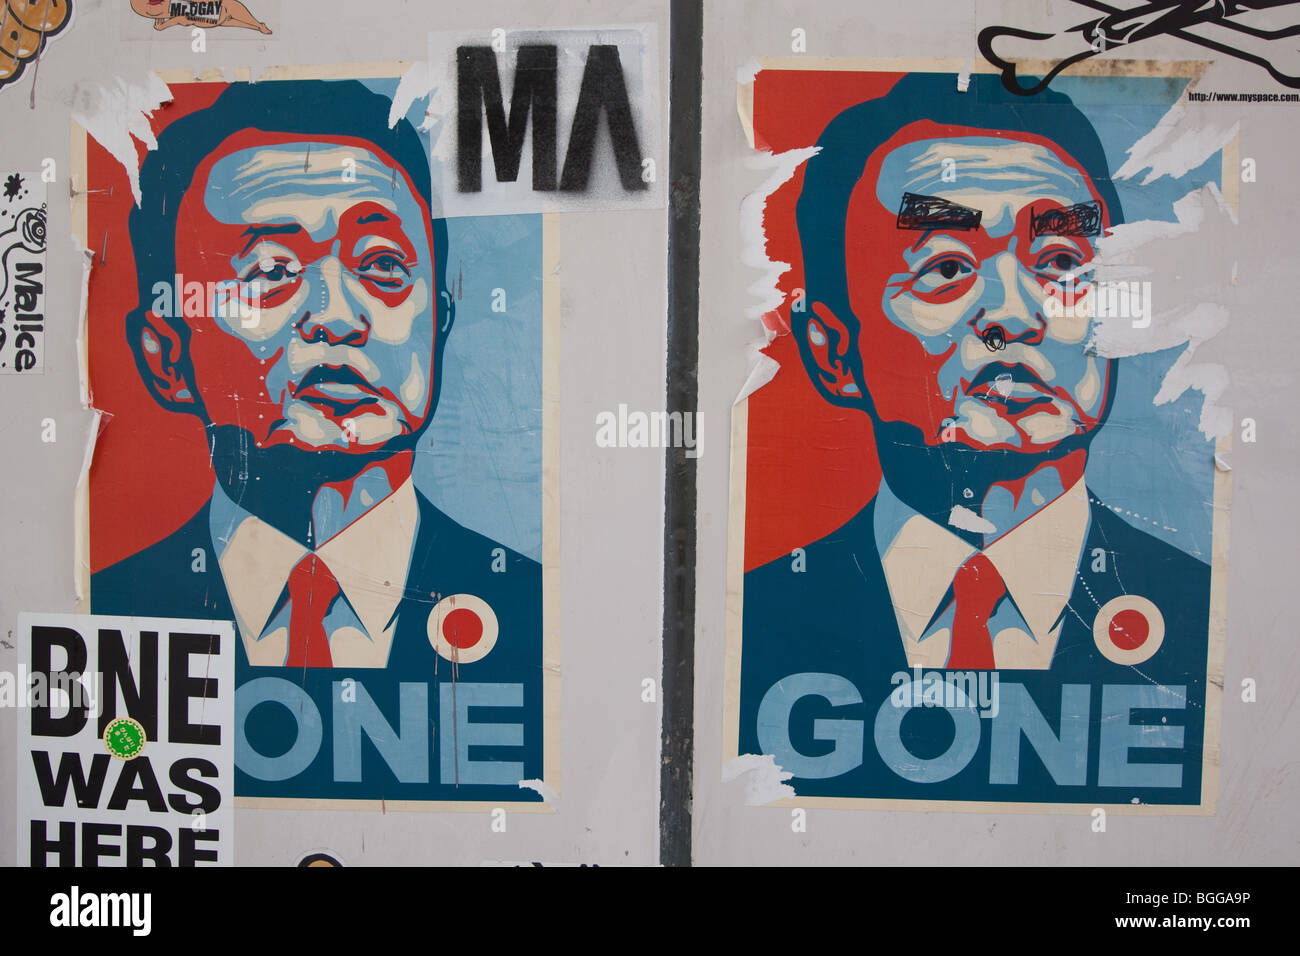 poster depicting Japanese politician Taro Aso, in the style of Shepard Fairey's poster of Barack OBama. - Stock Image